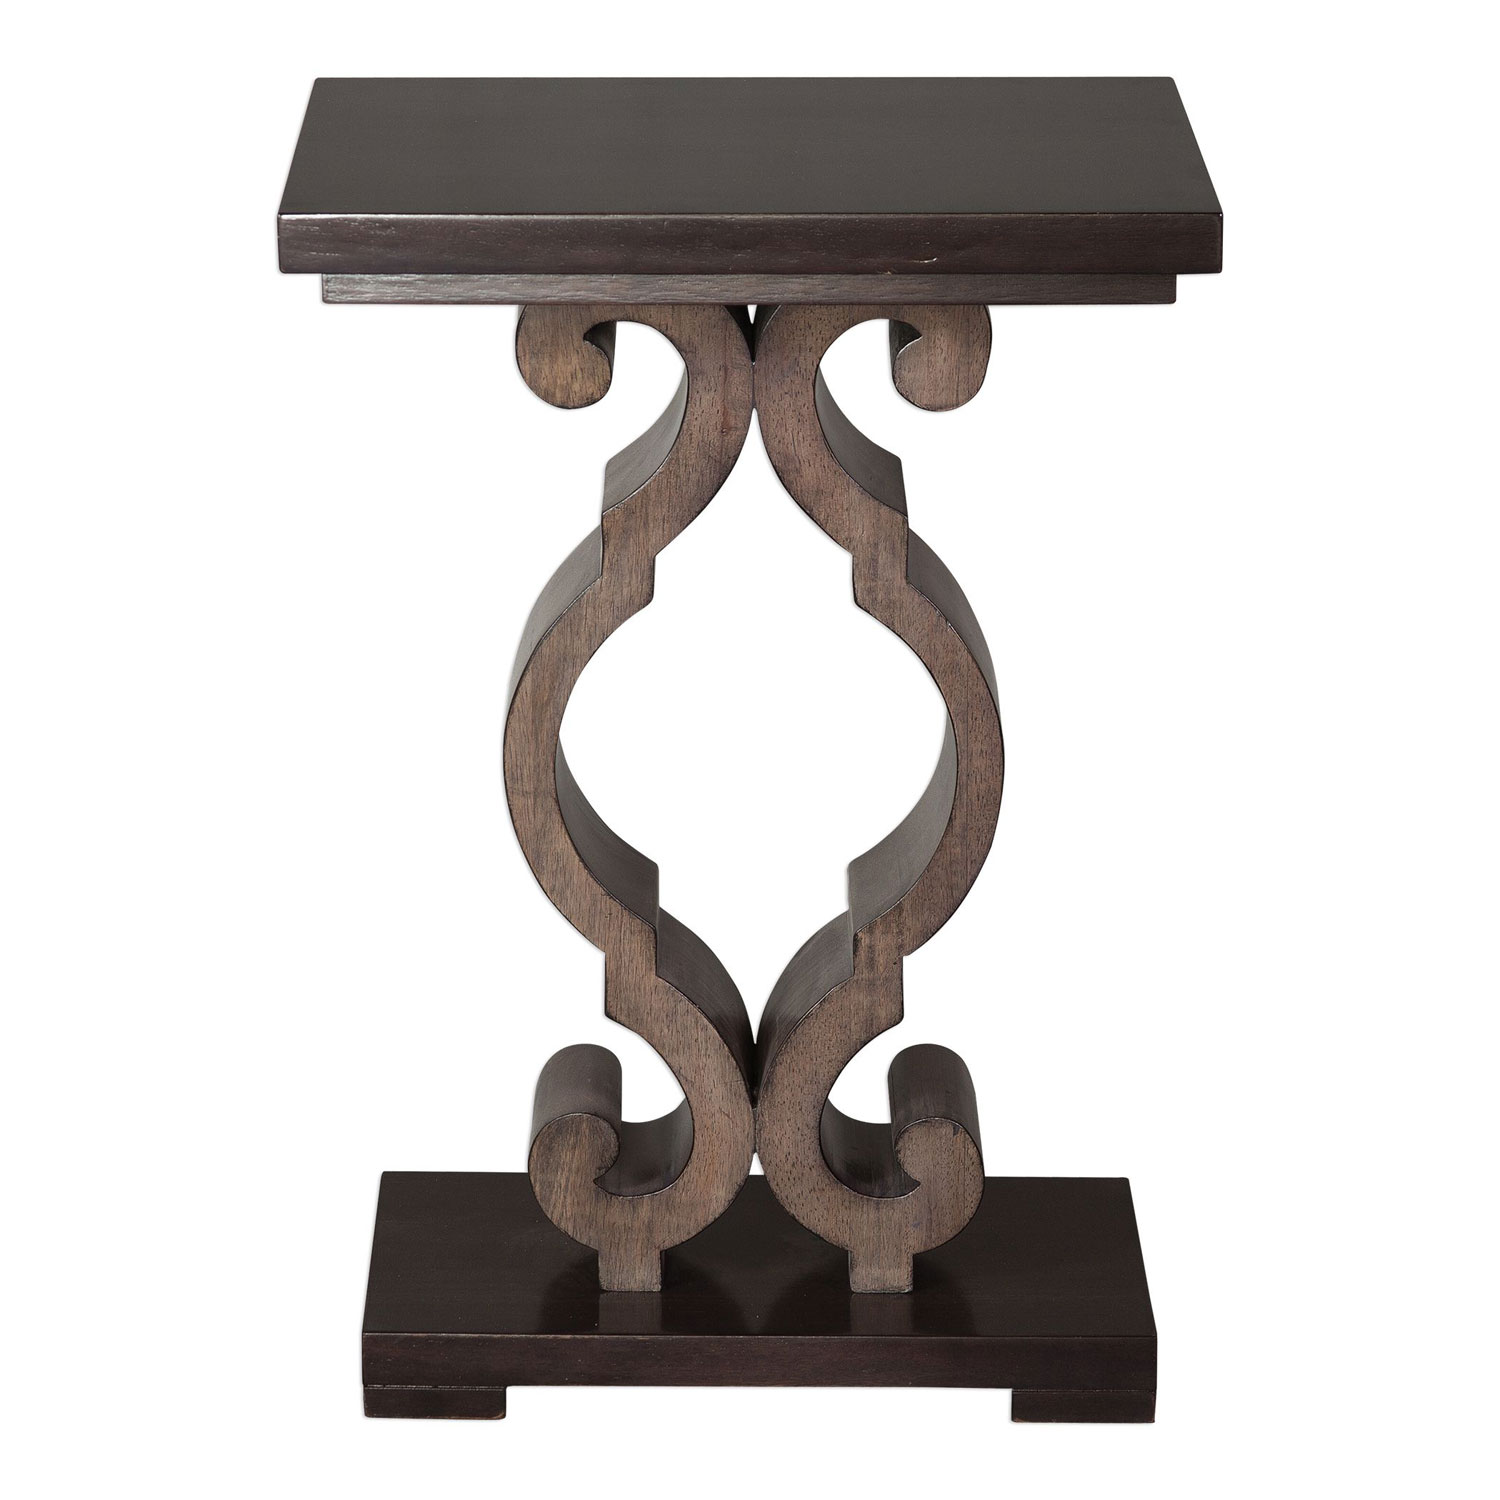 uttermost parina ebony accent table bellacor blythe hover zoom old coffee maritime pendant patio furniture dining sets natural cherry iron glass end tables garden drinks cooler